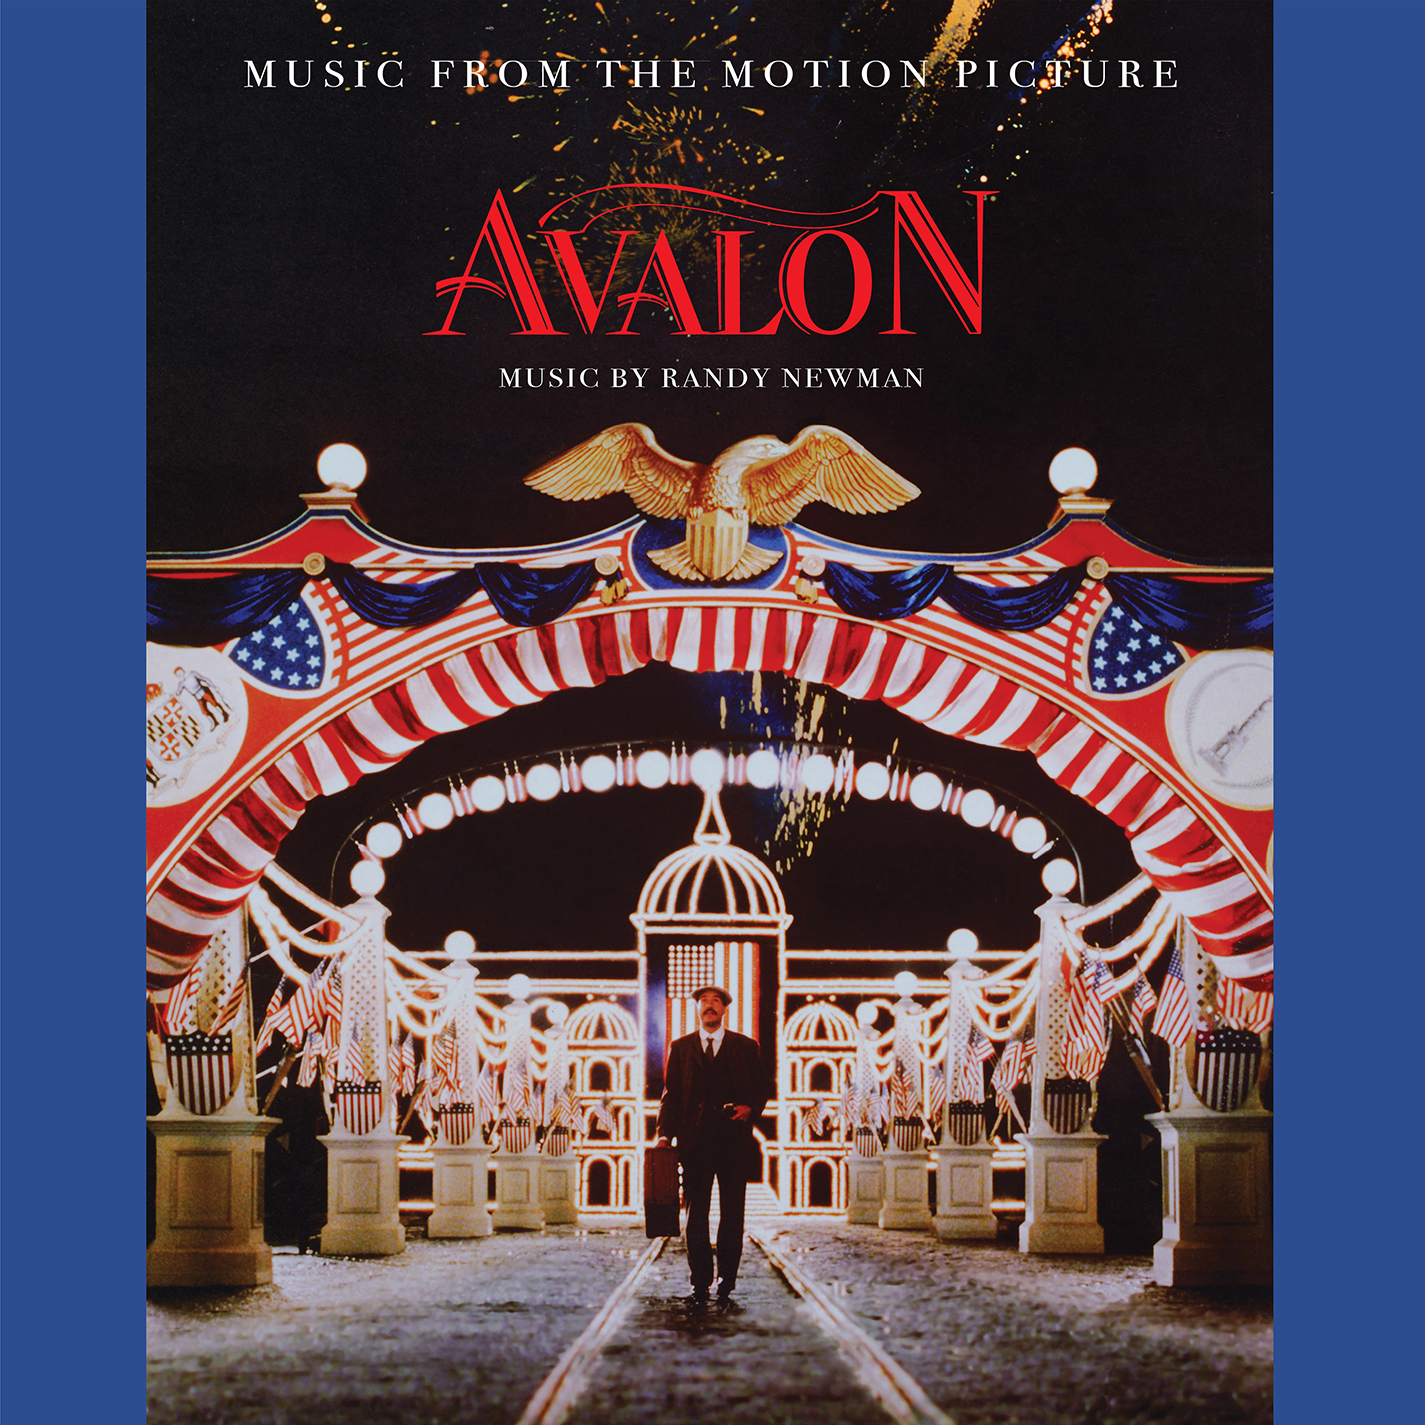 Randy Newman Avalon Soundtrack (Music From The Motion Picture Avalon) LP (Blue Vinyl)